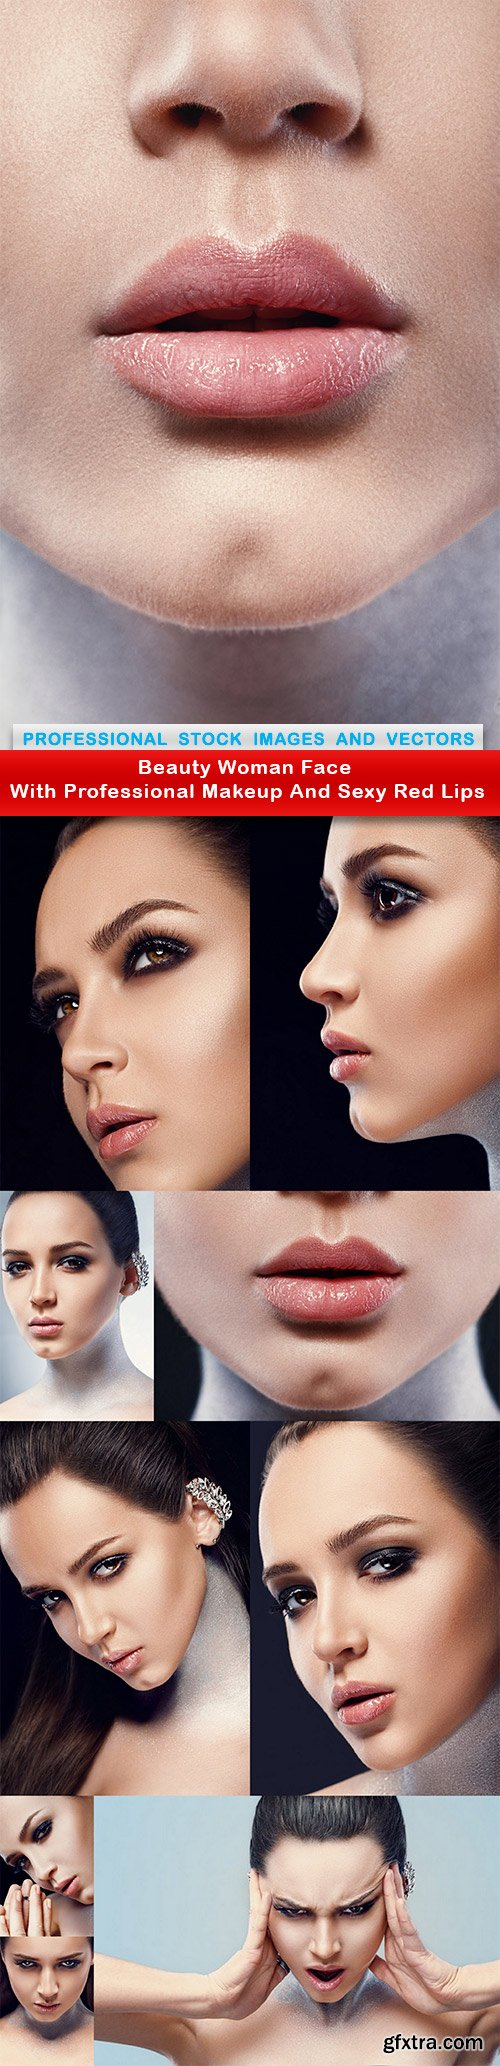 Beauty Woman Face With Professional Makeup And Sexy Red Lips - 10 UHQ JPEG